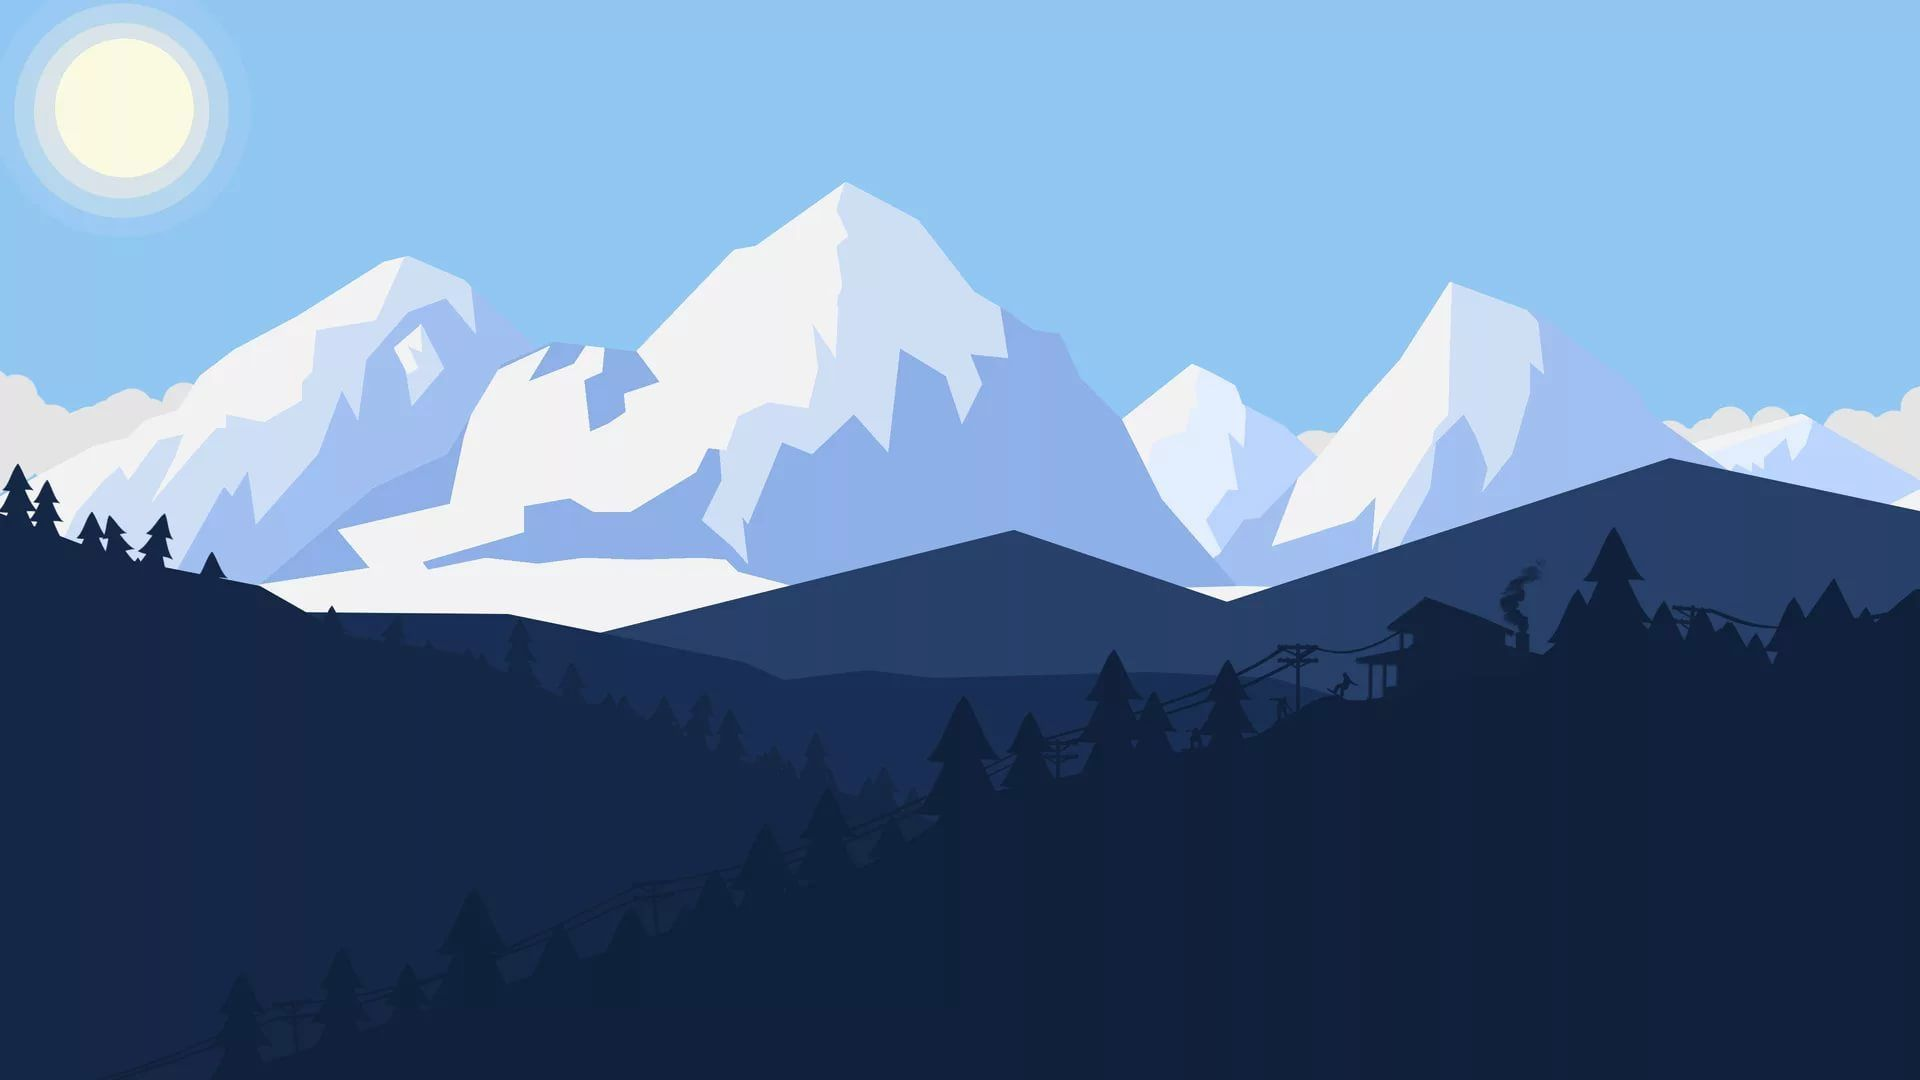 Free Mountain Vector background